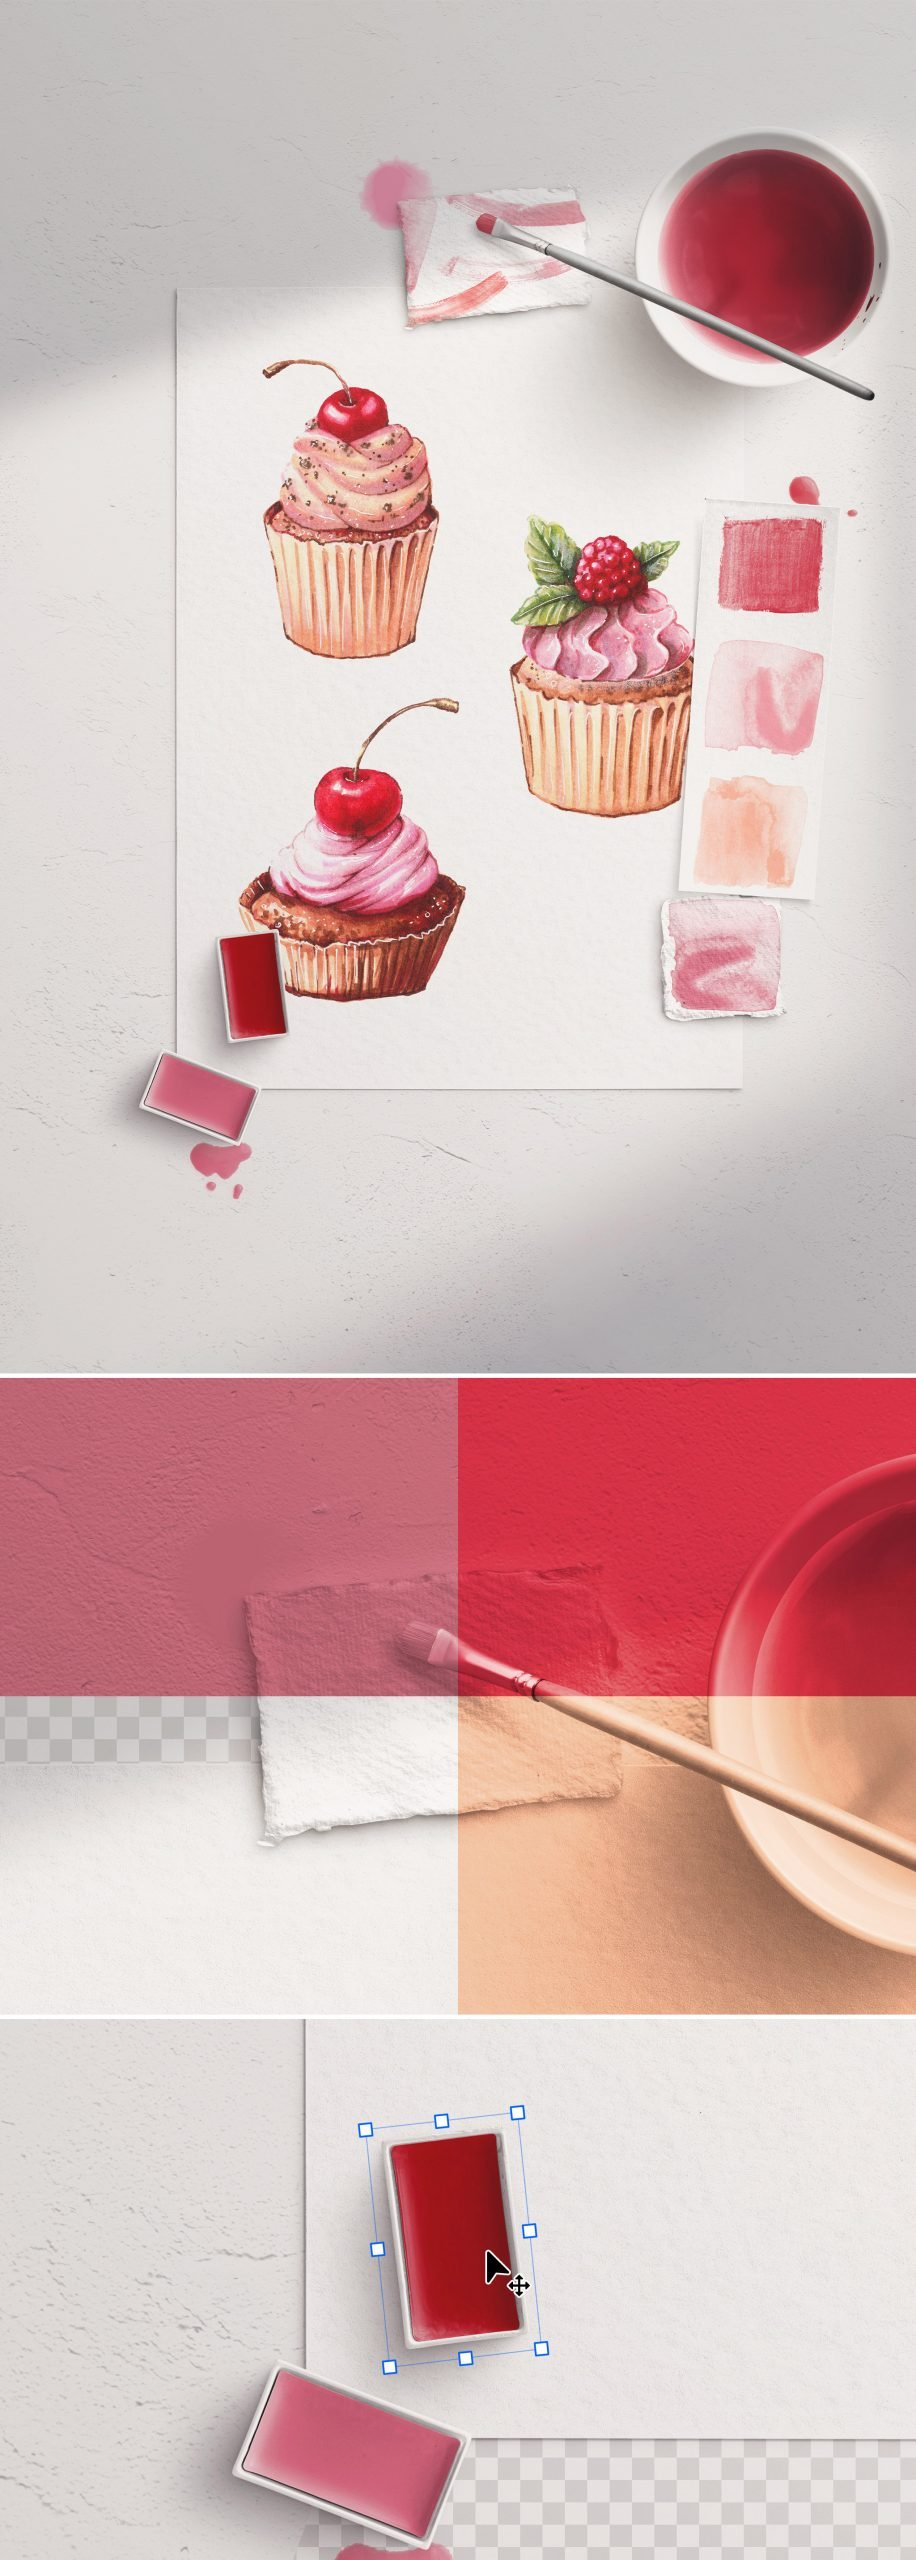 watercolor mockup scene creator 3 preview1 scaled